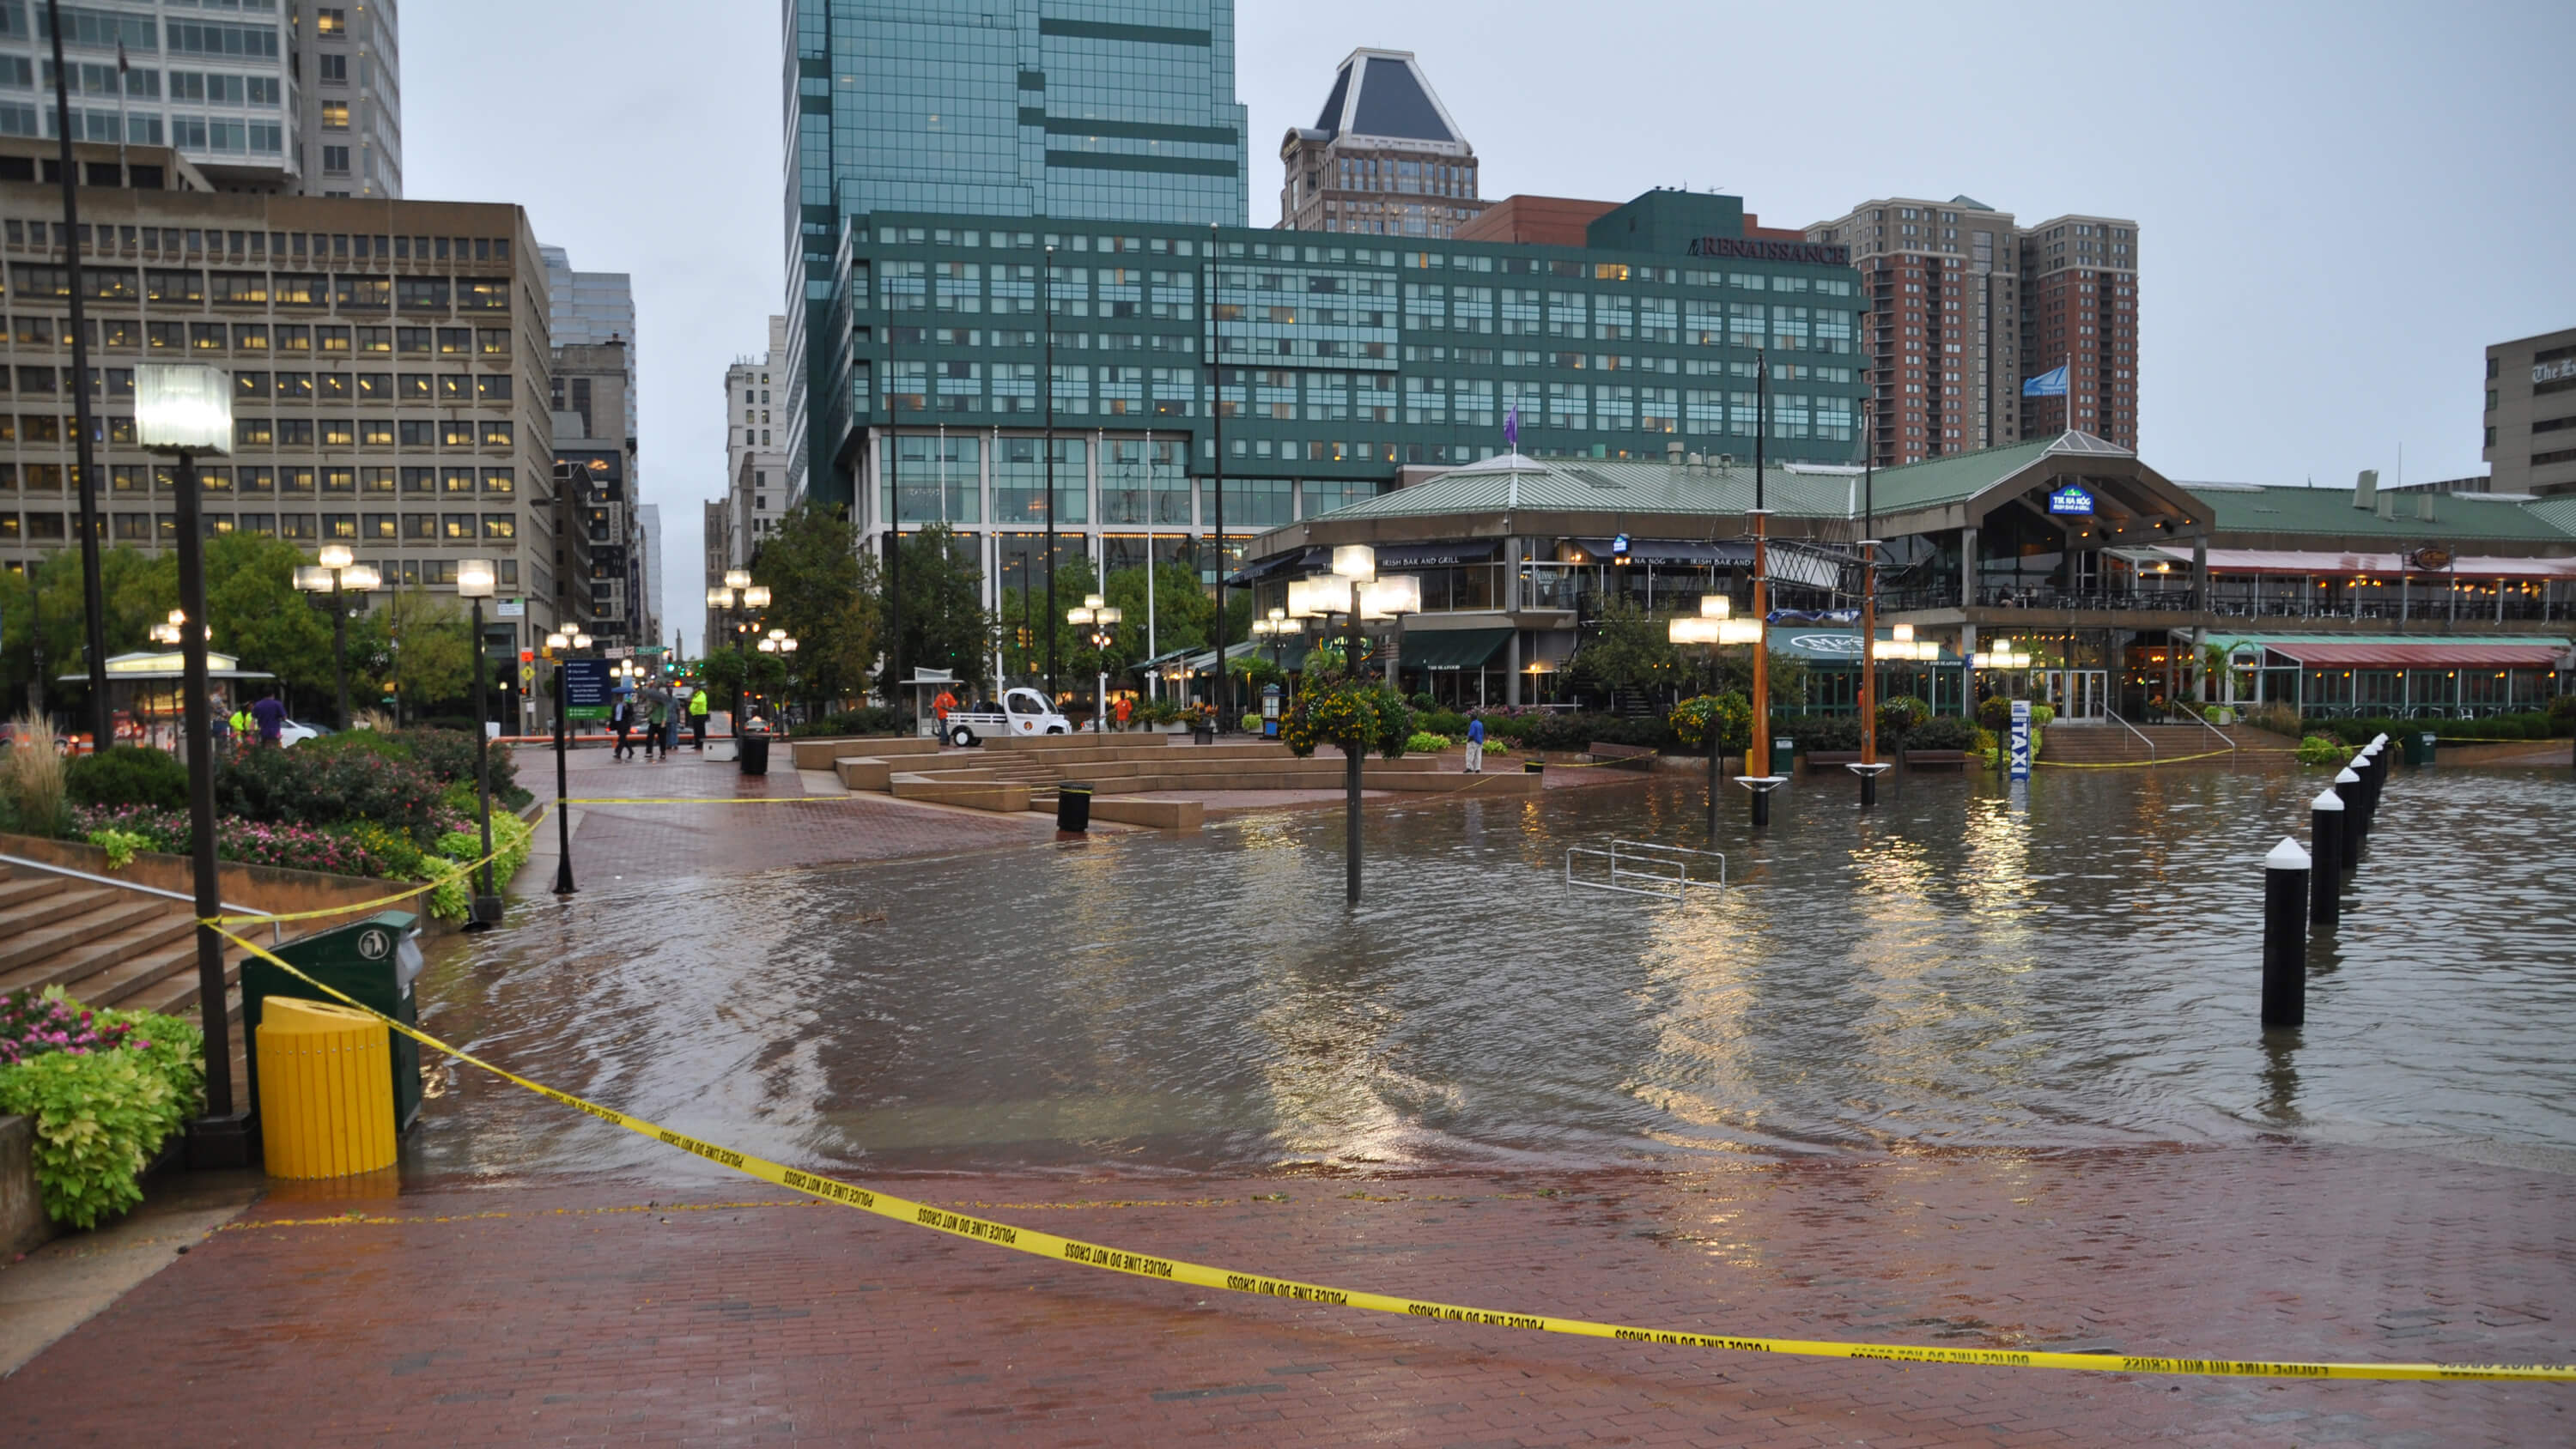 The sea also rises the inner harbor fells point and the greater baltimore harbor area will be challenged by ever stronger storm surges photo credit baltimore city nvjuhfo Gallery